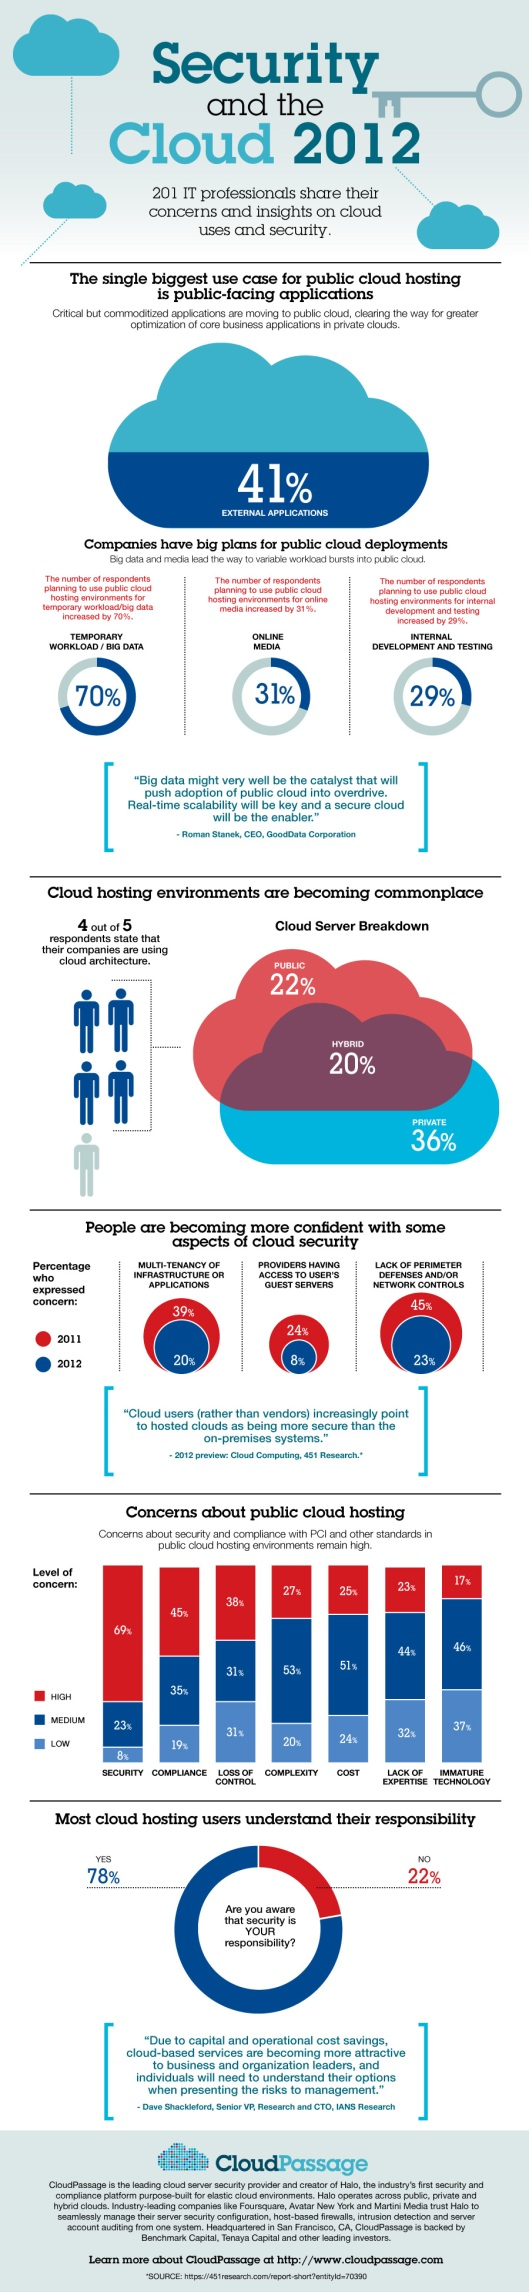 Cloud_security_Survey_2012-infographic